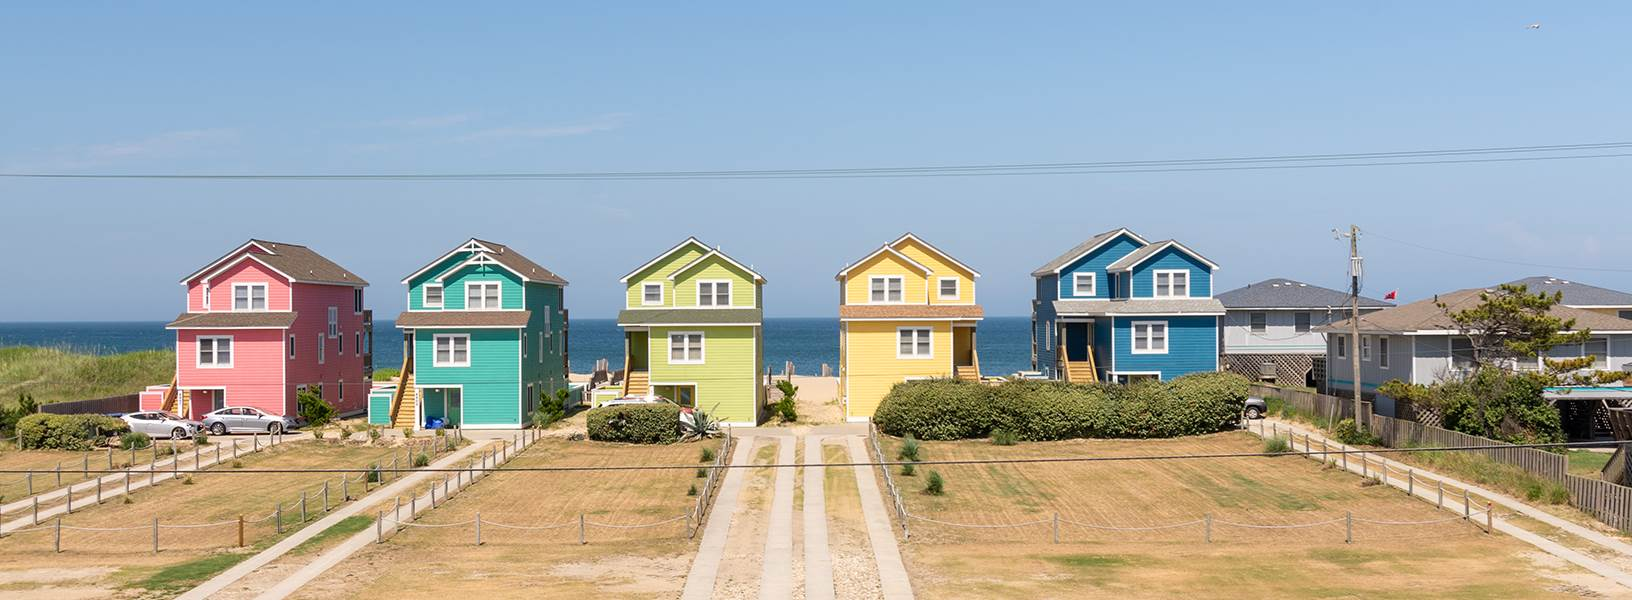 Nags Head, NC Beach Houses